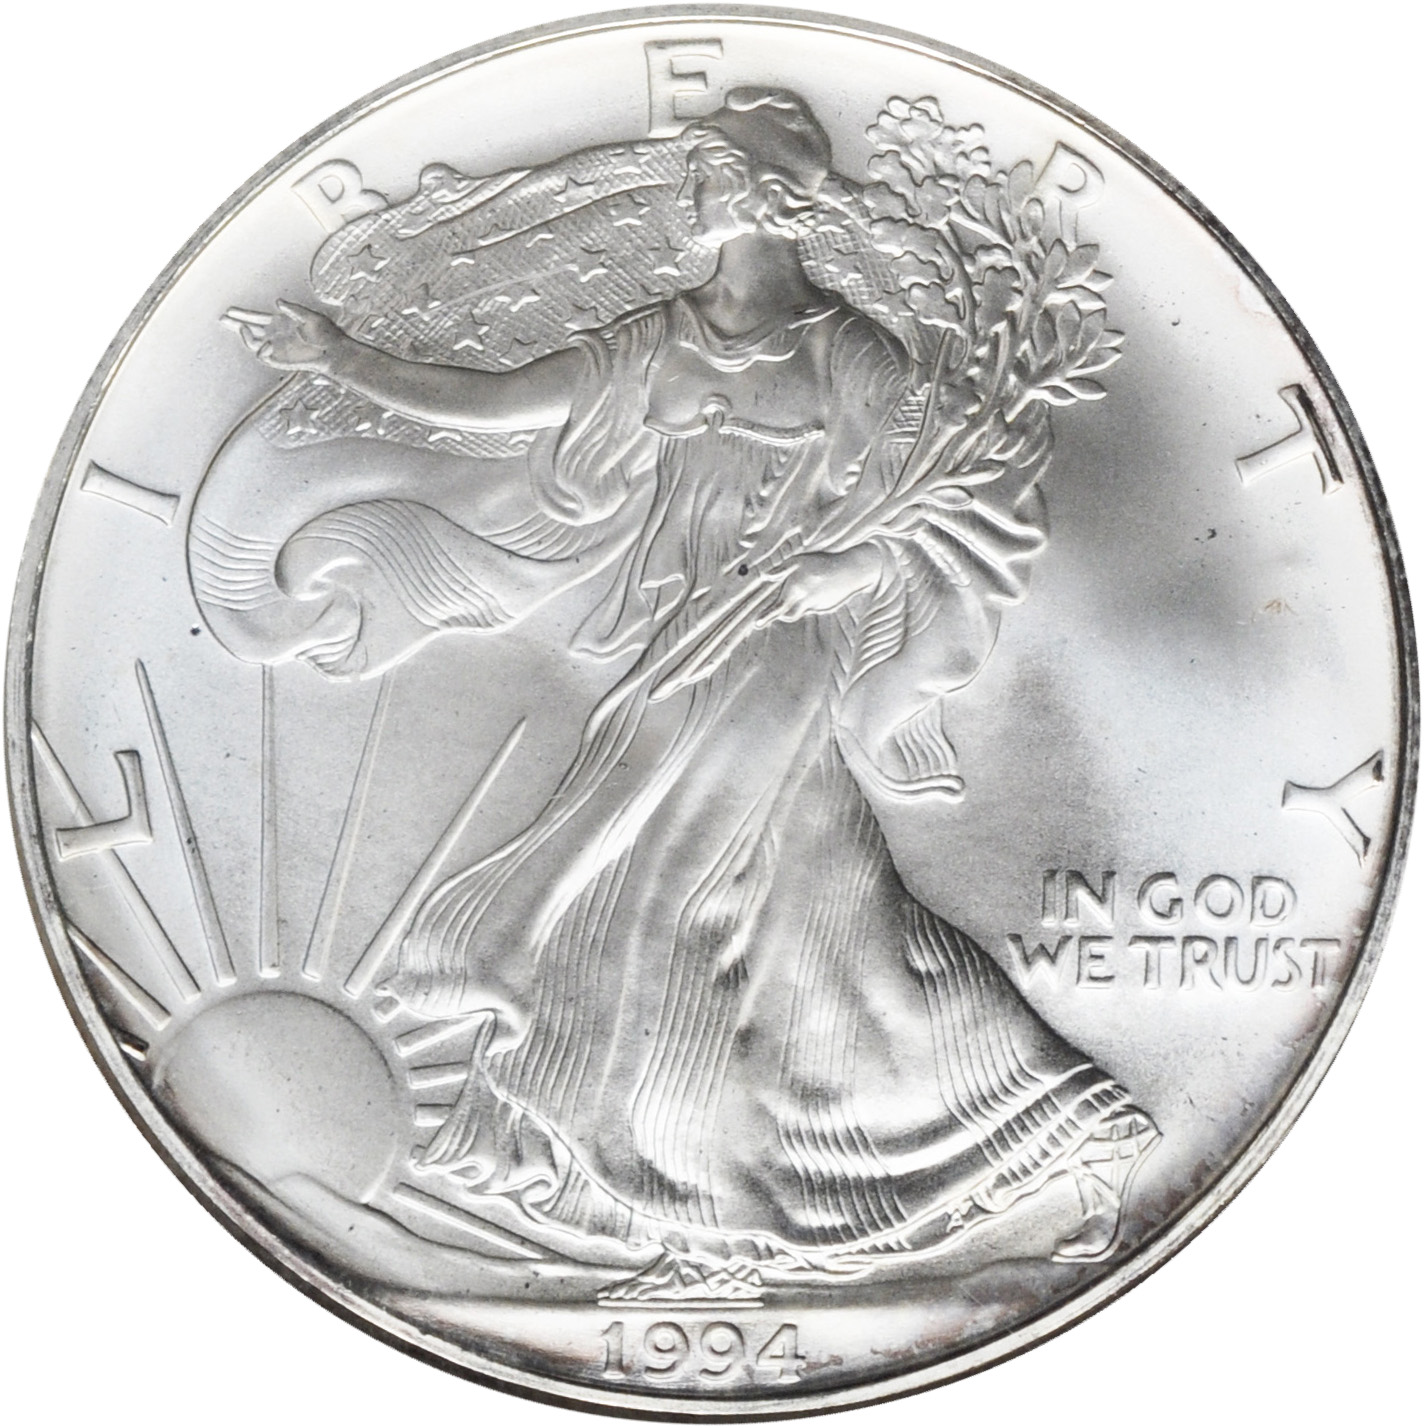 Value Of 1994 $1 Silver Coin